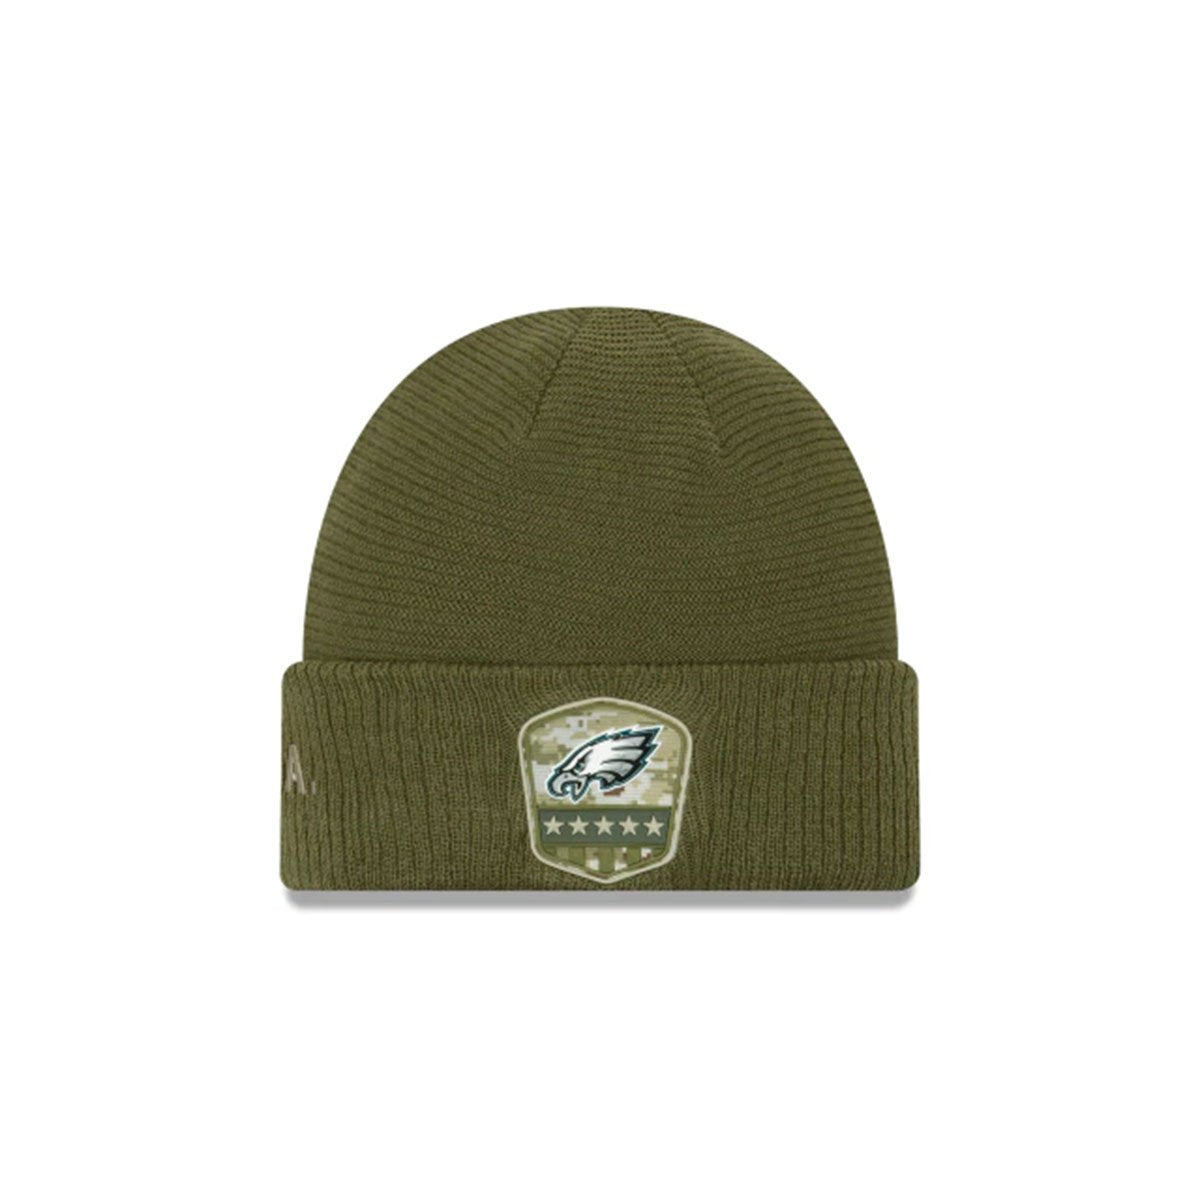 PHILADELPHIA EAGLES SALUTE TO SERVICE CUFF KNIT GREEN/WHITE